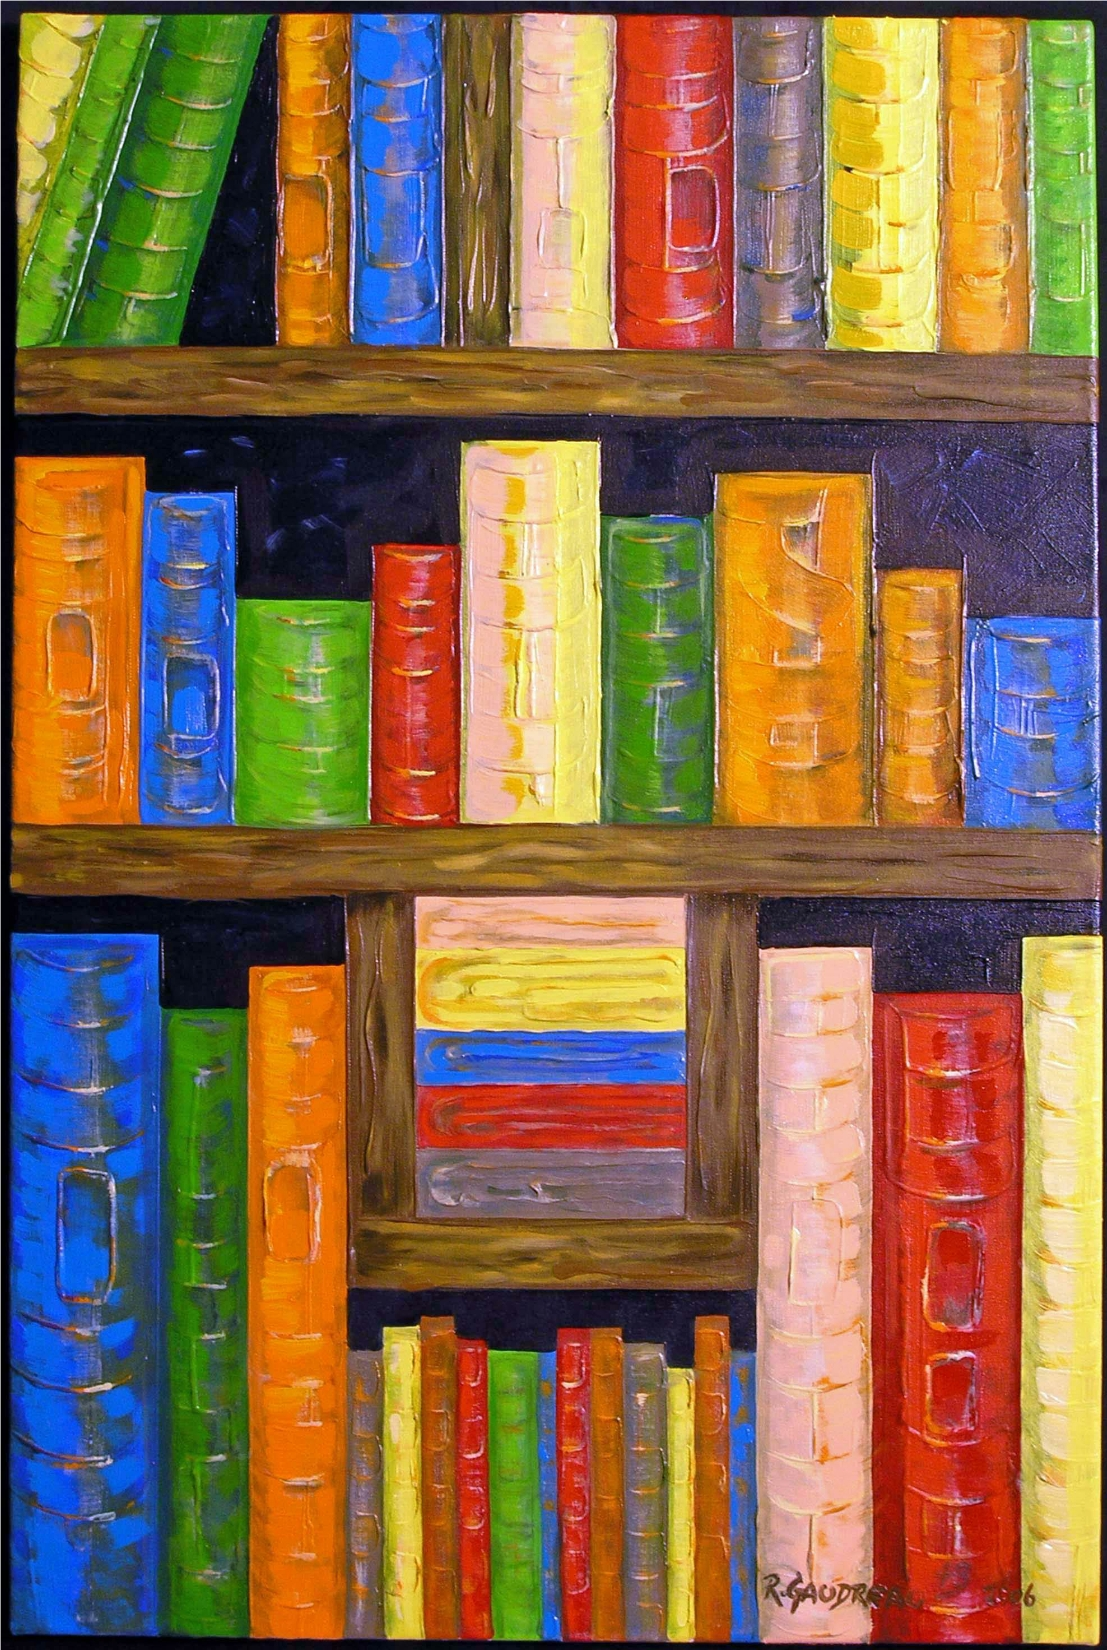 43  Books 2006 oil on canvas 36 x 24 inches